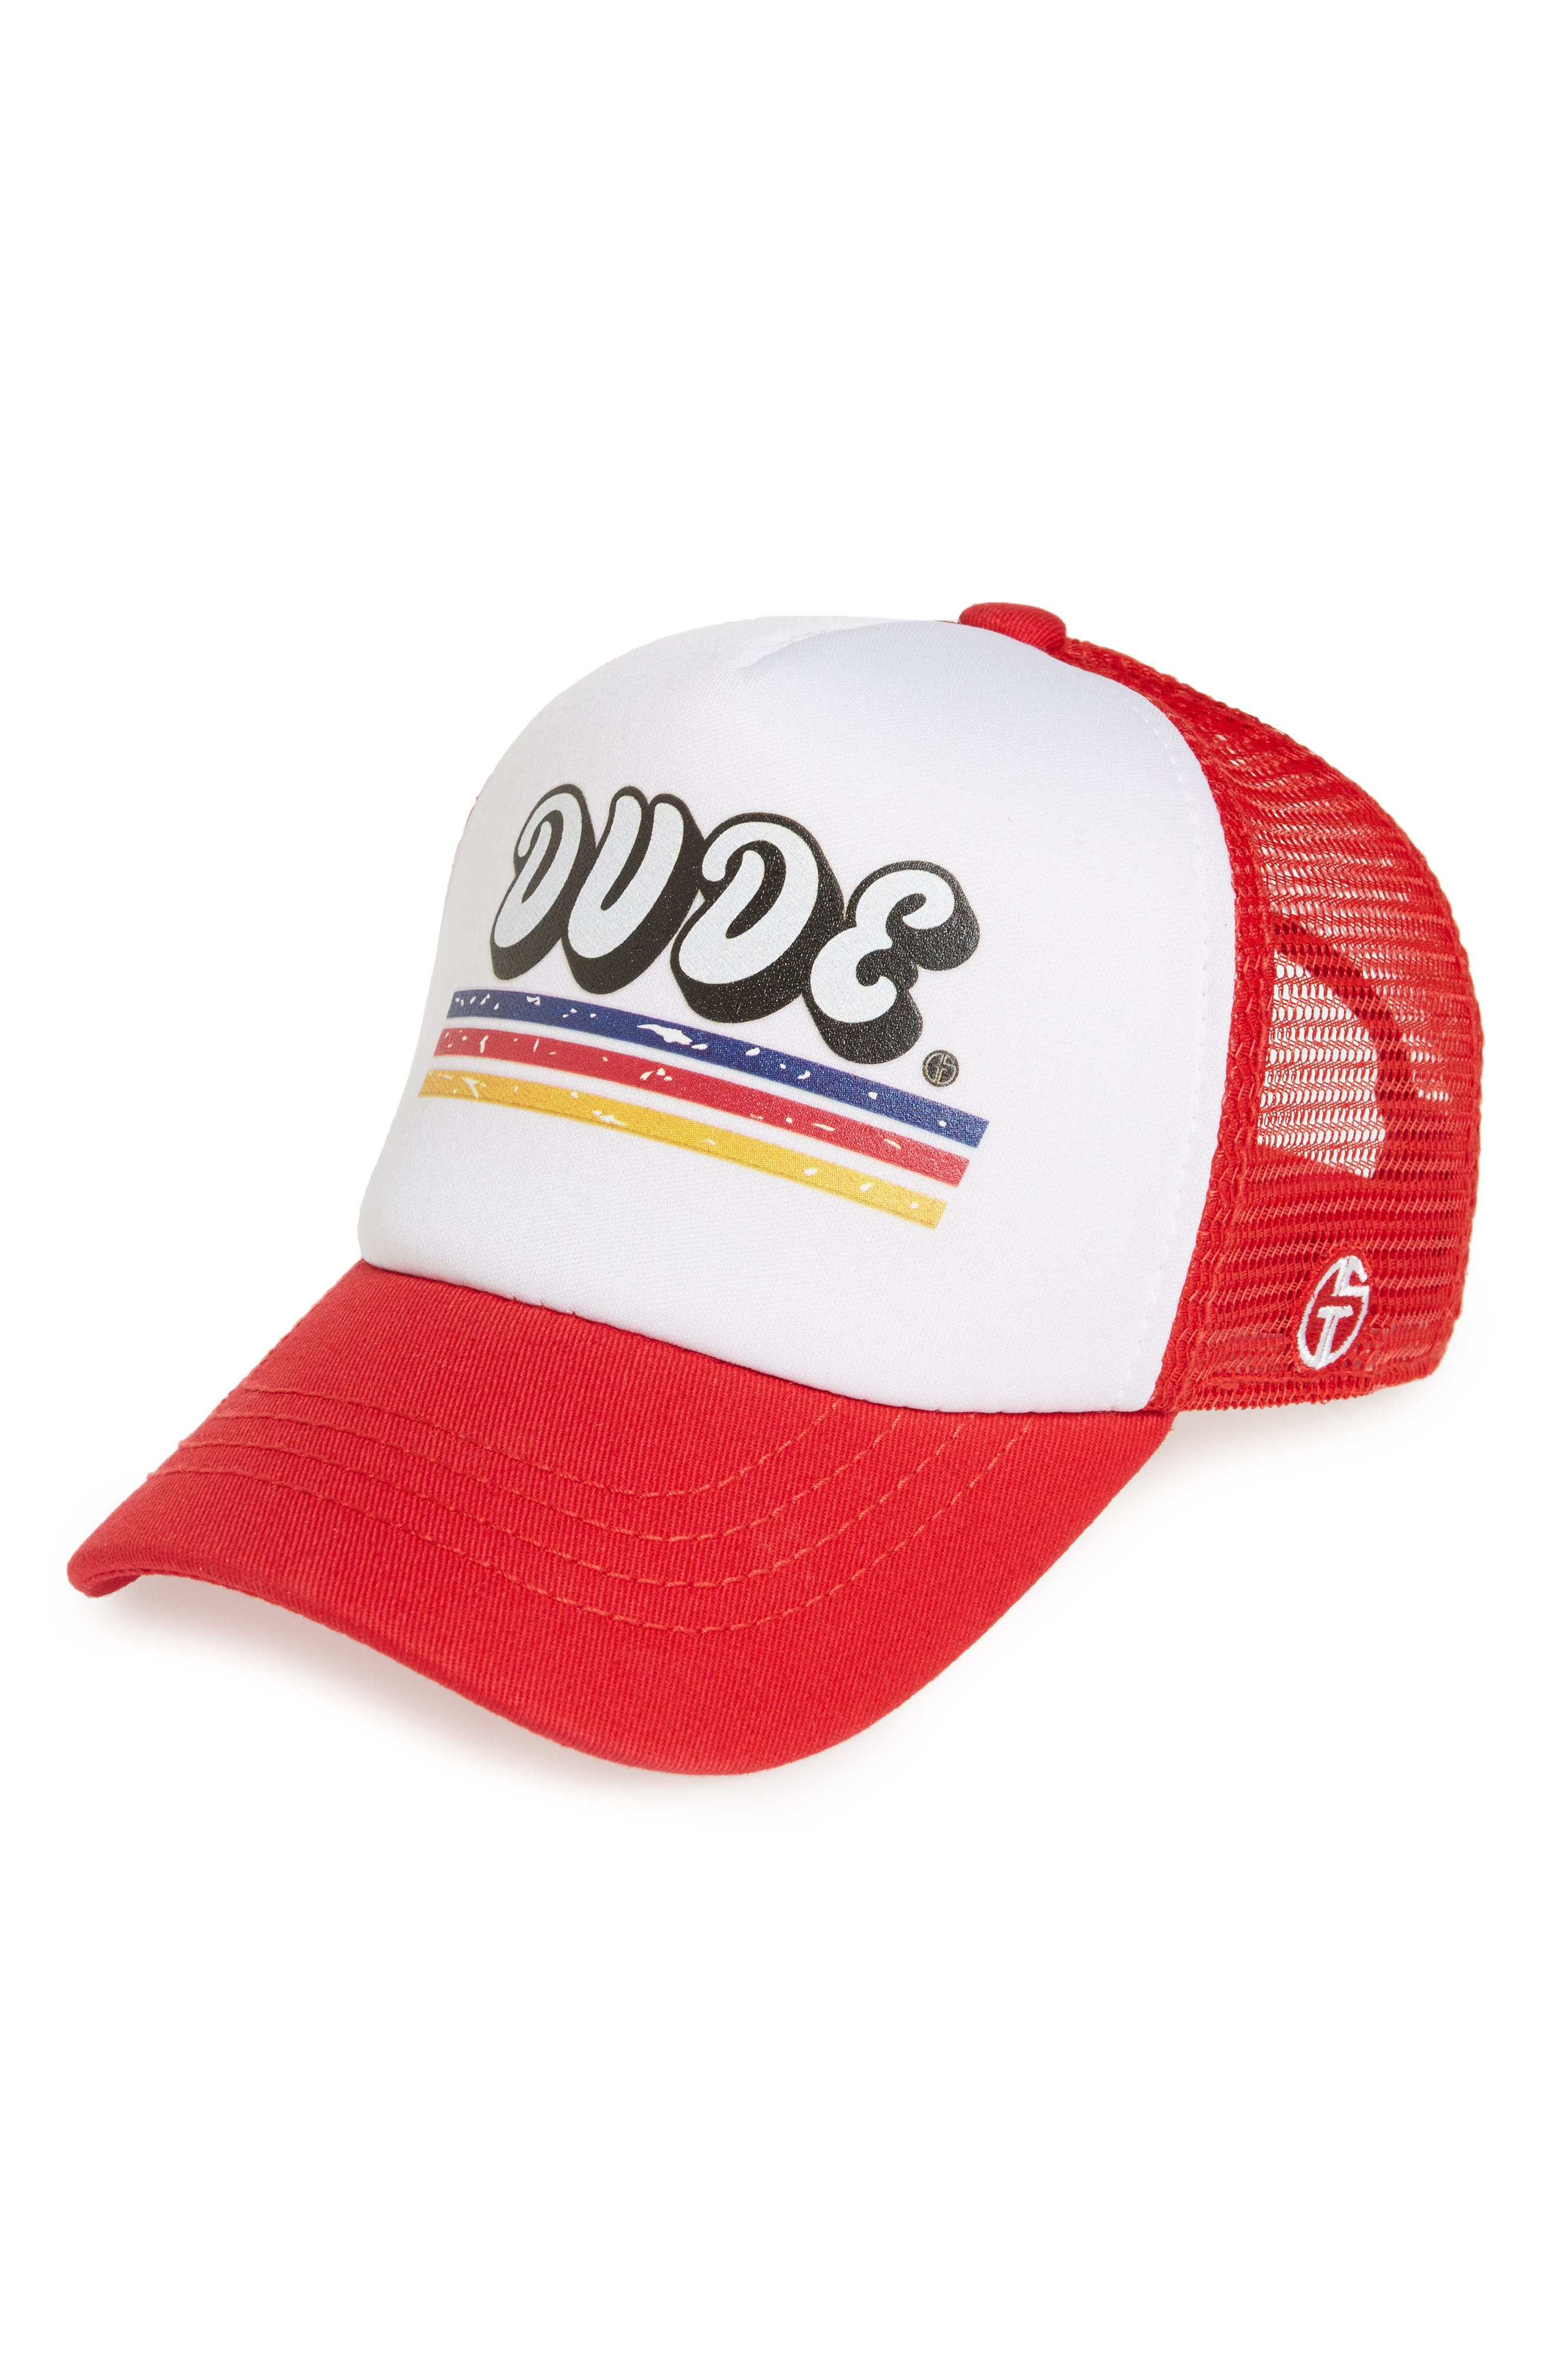 GROM SQUAD Dude Trucker Hat, Main, color, 600